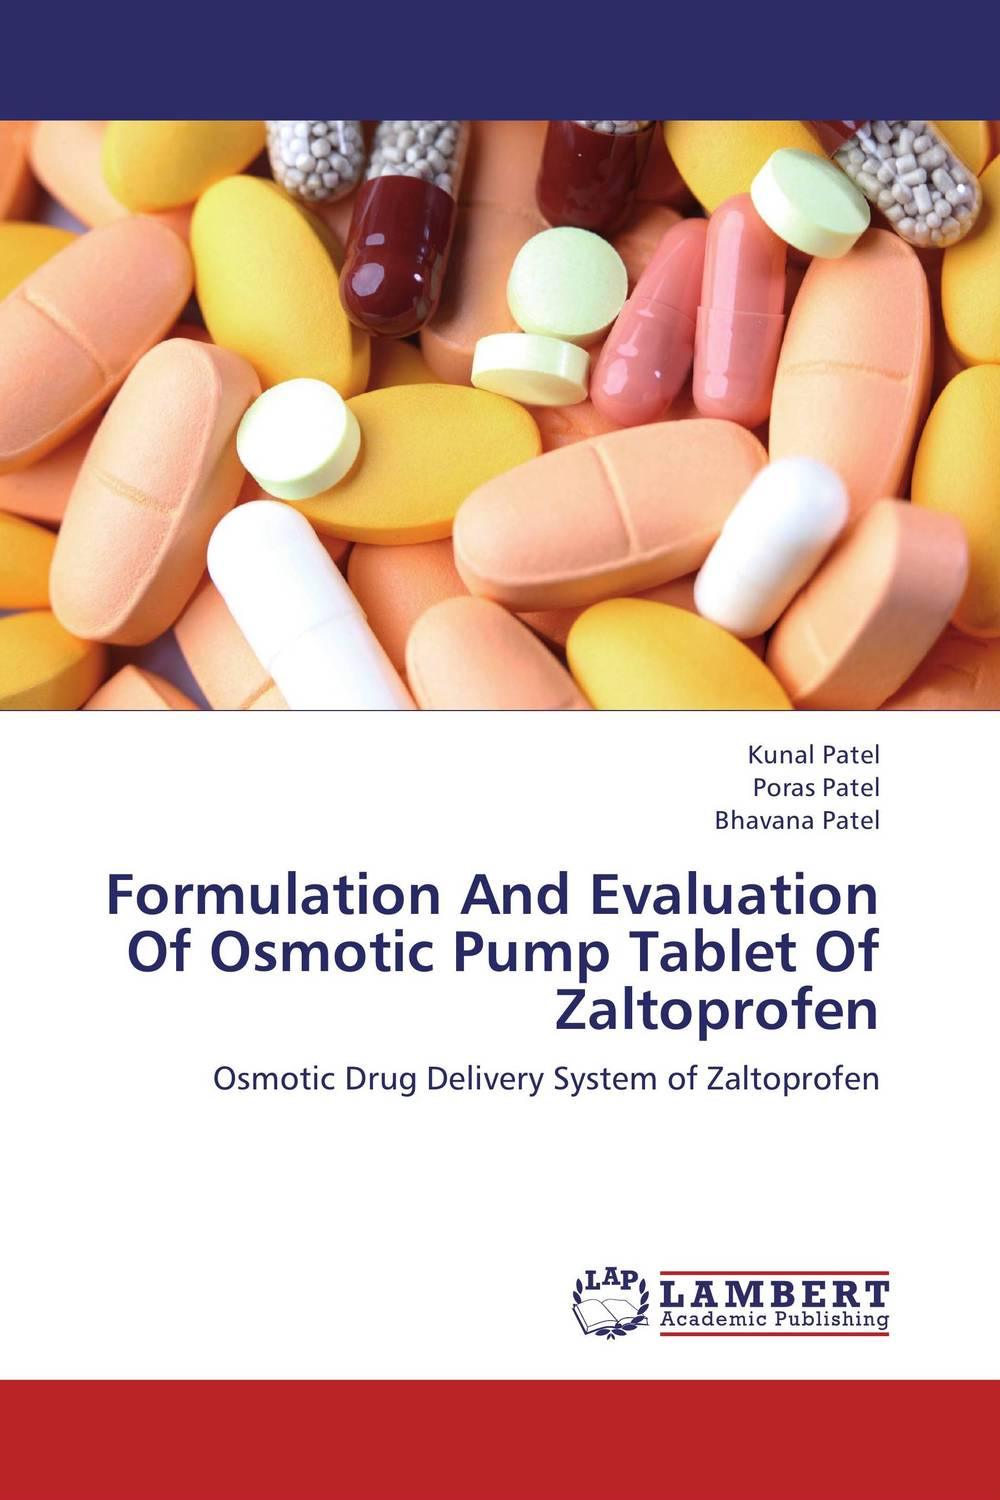 Formulation And Evaluation Of Osmotic Pump Tablet Of Zaltoprofen evaluation of pile failure mechanism by piv method